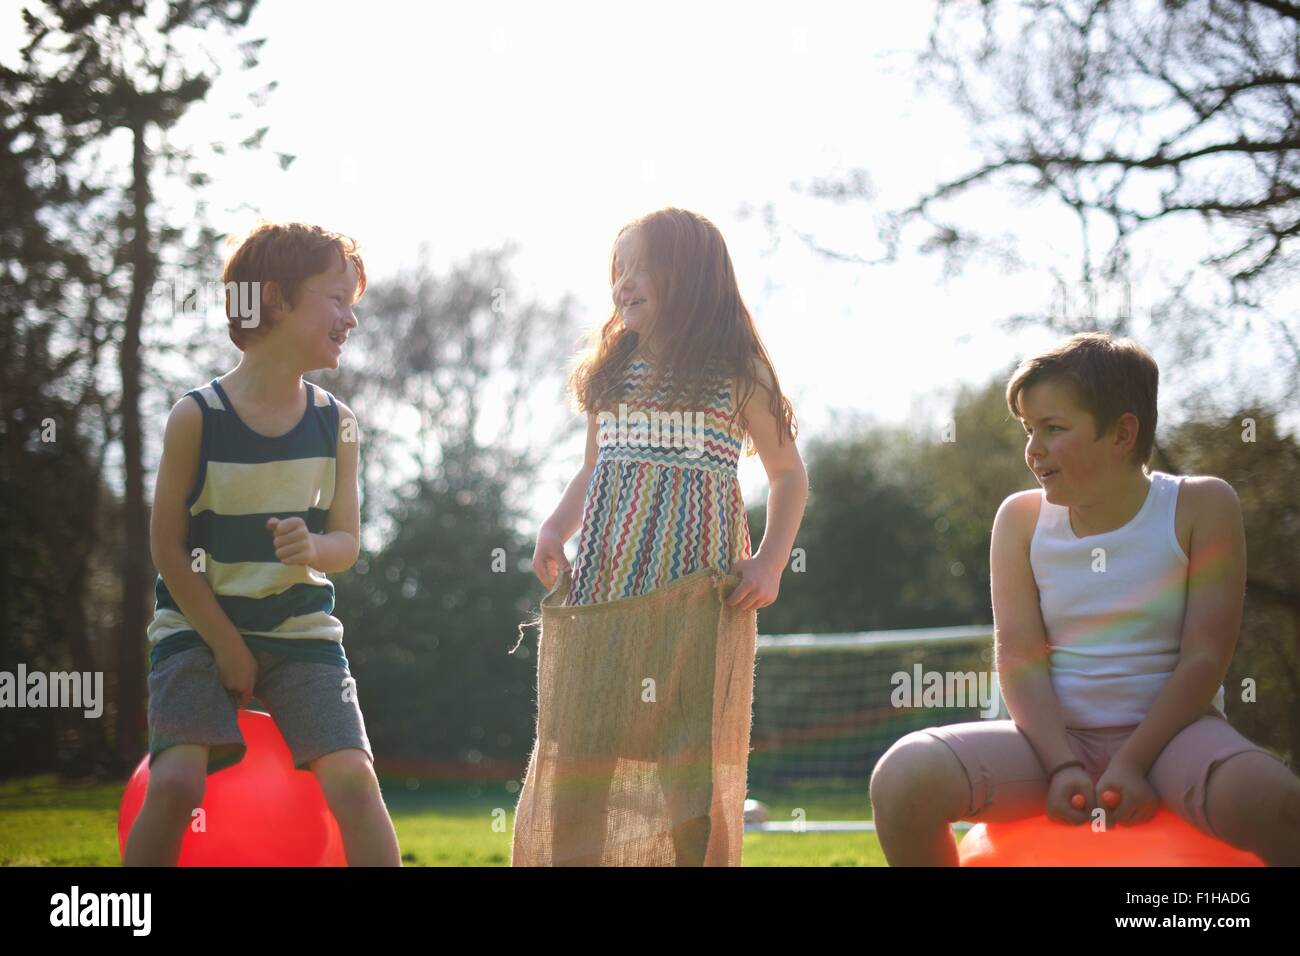 Young children on inflatable hopper and standing in sack, ready for race Stock Photo